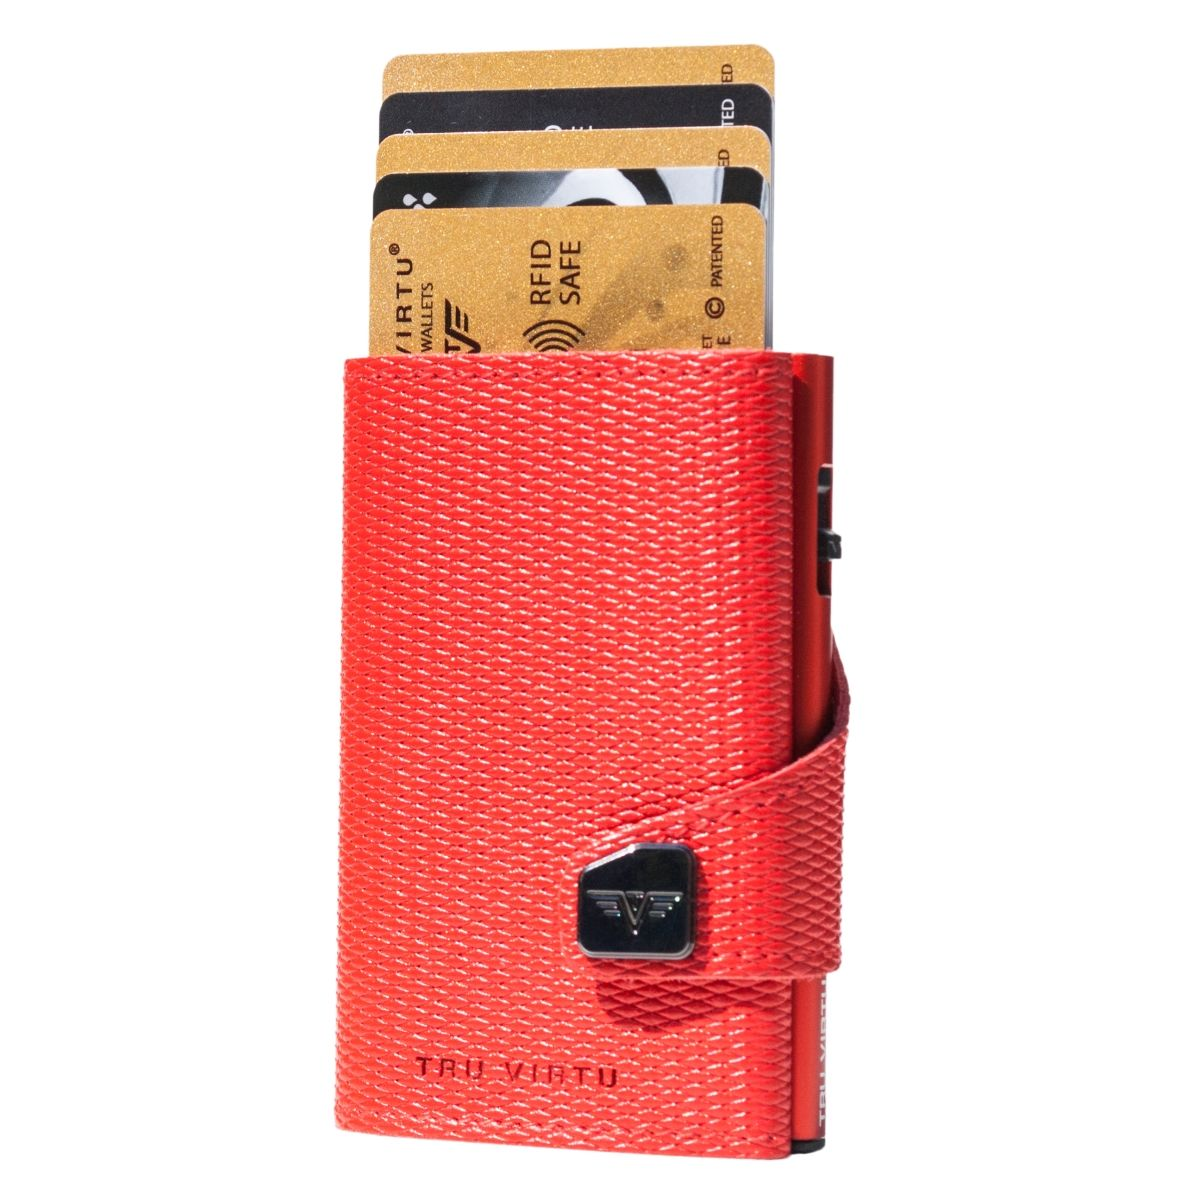 TRU VIRTU Click n Slide Wallet - Red